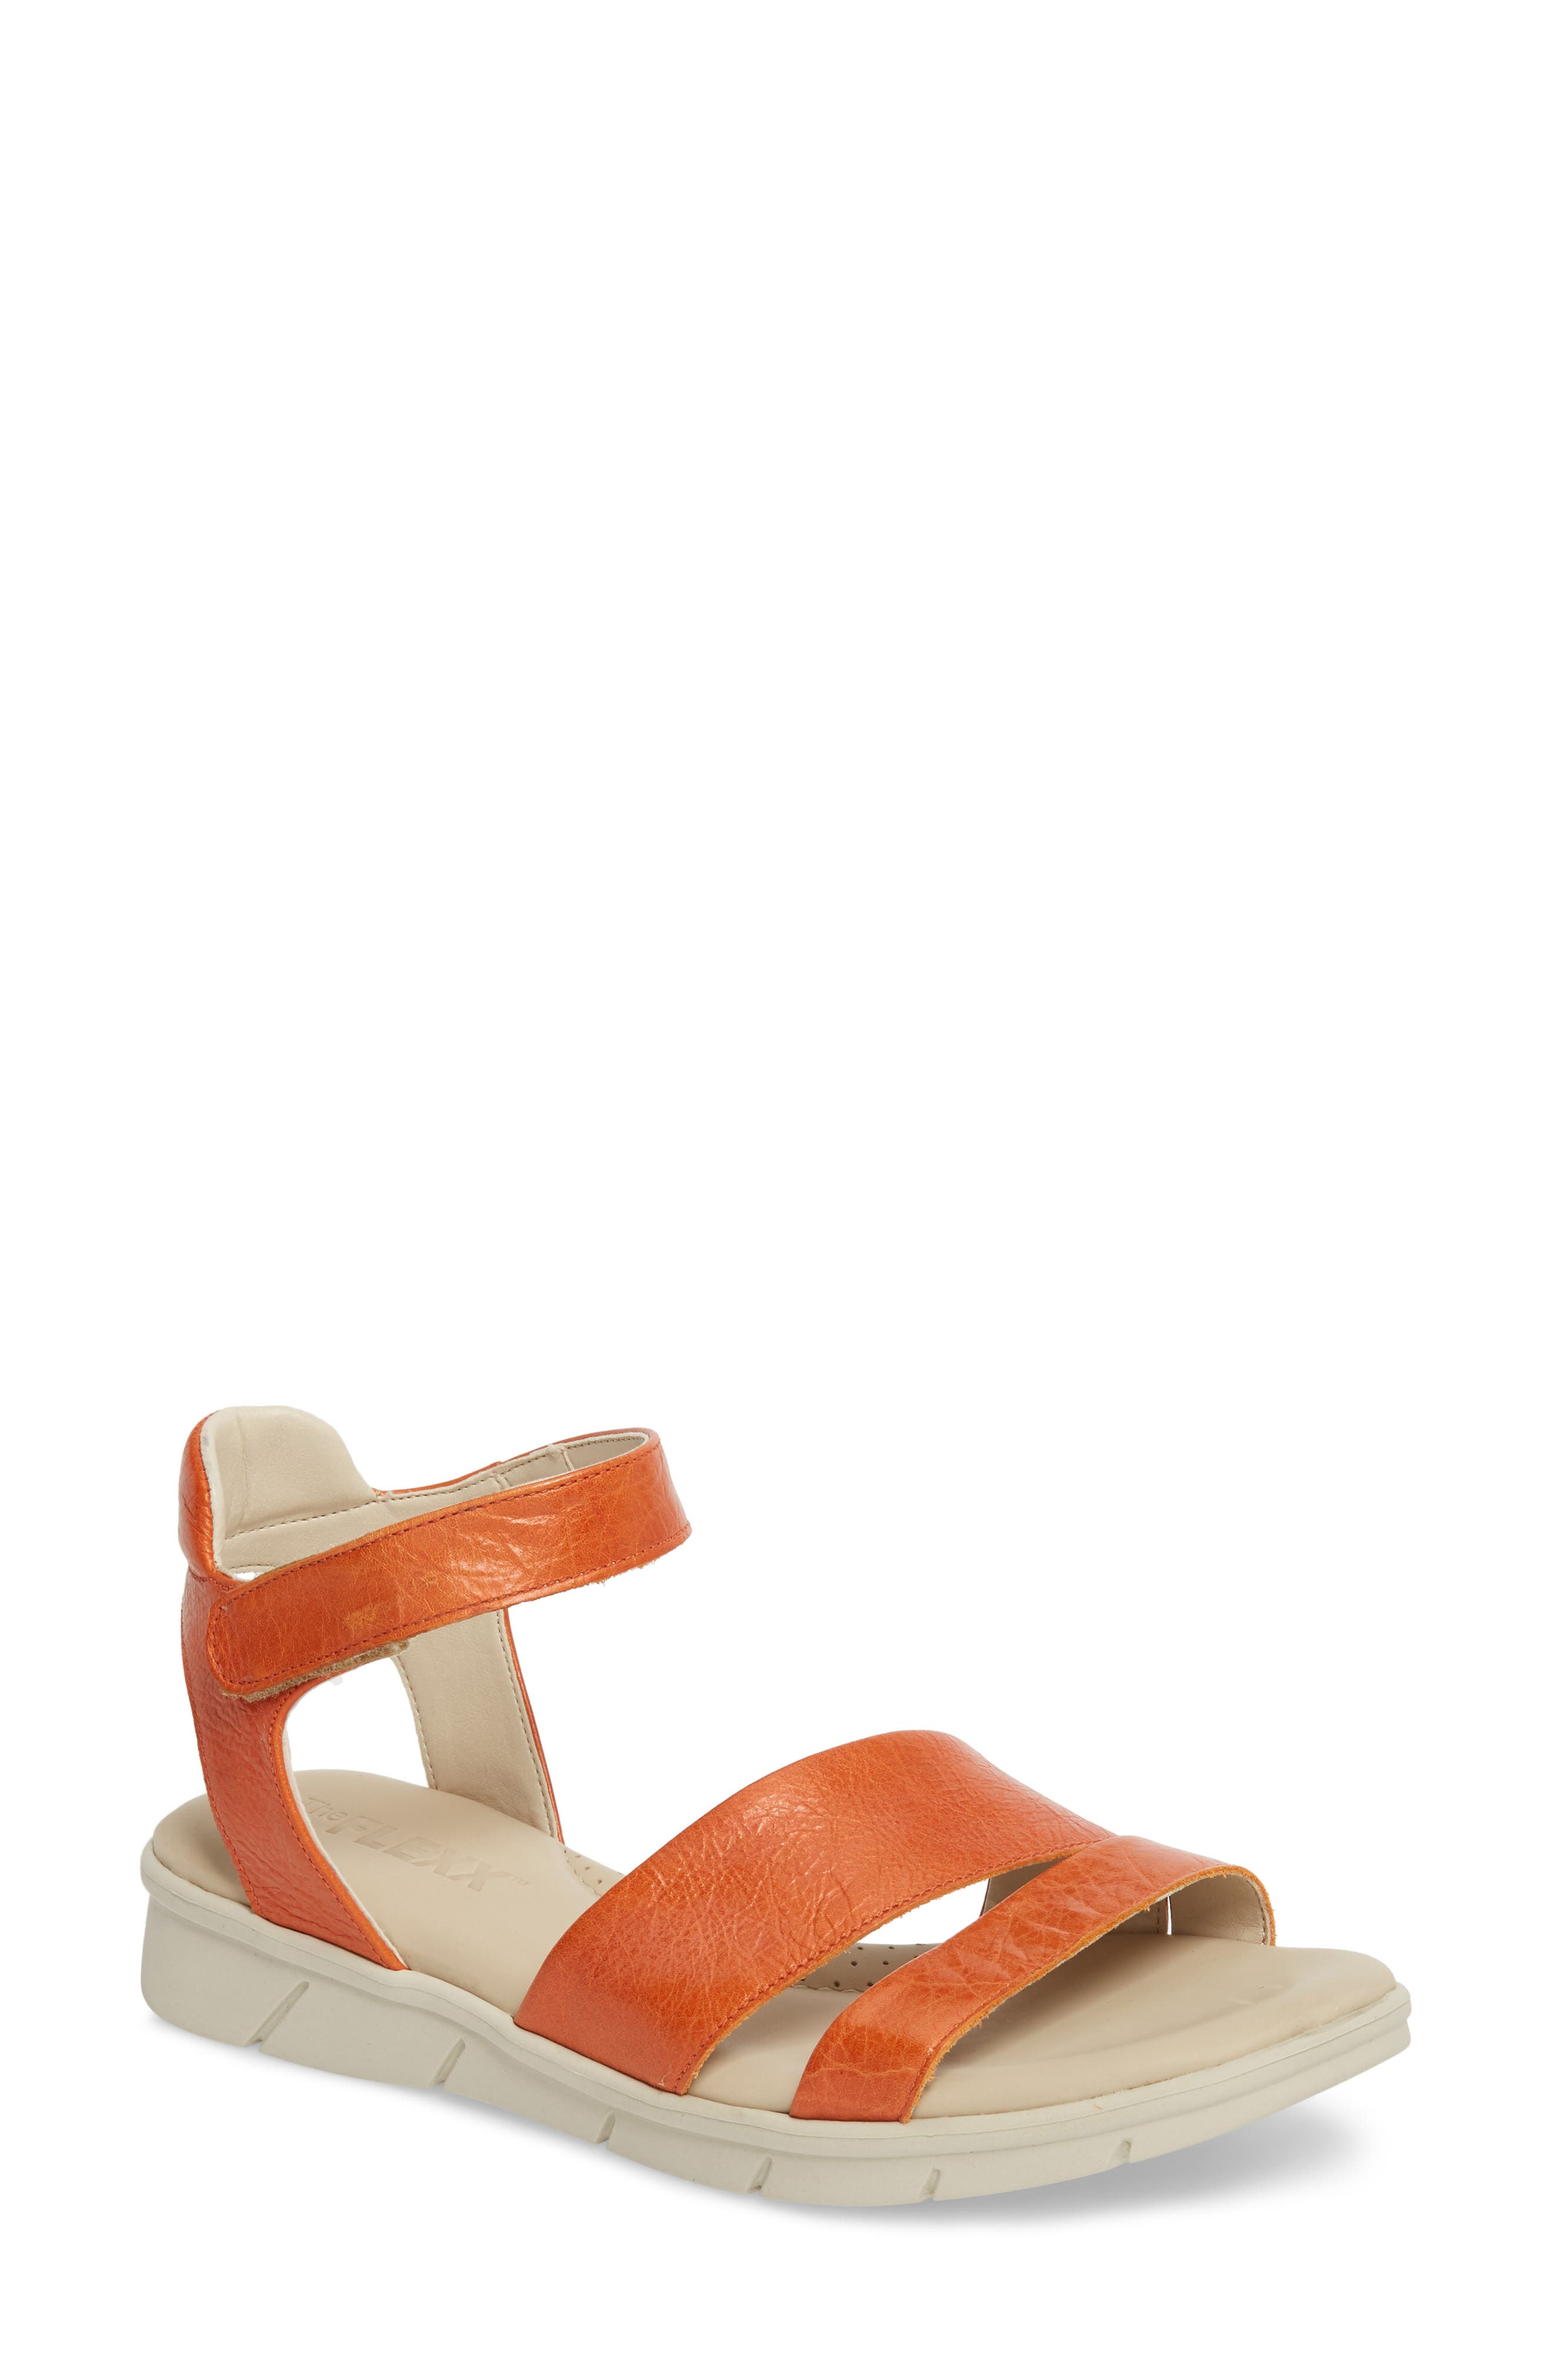 Crossover Ankle Strap Sandal,                             Main thumbnail 1, color,                             Mandarin Leather